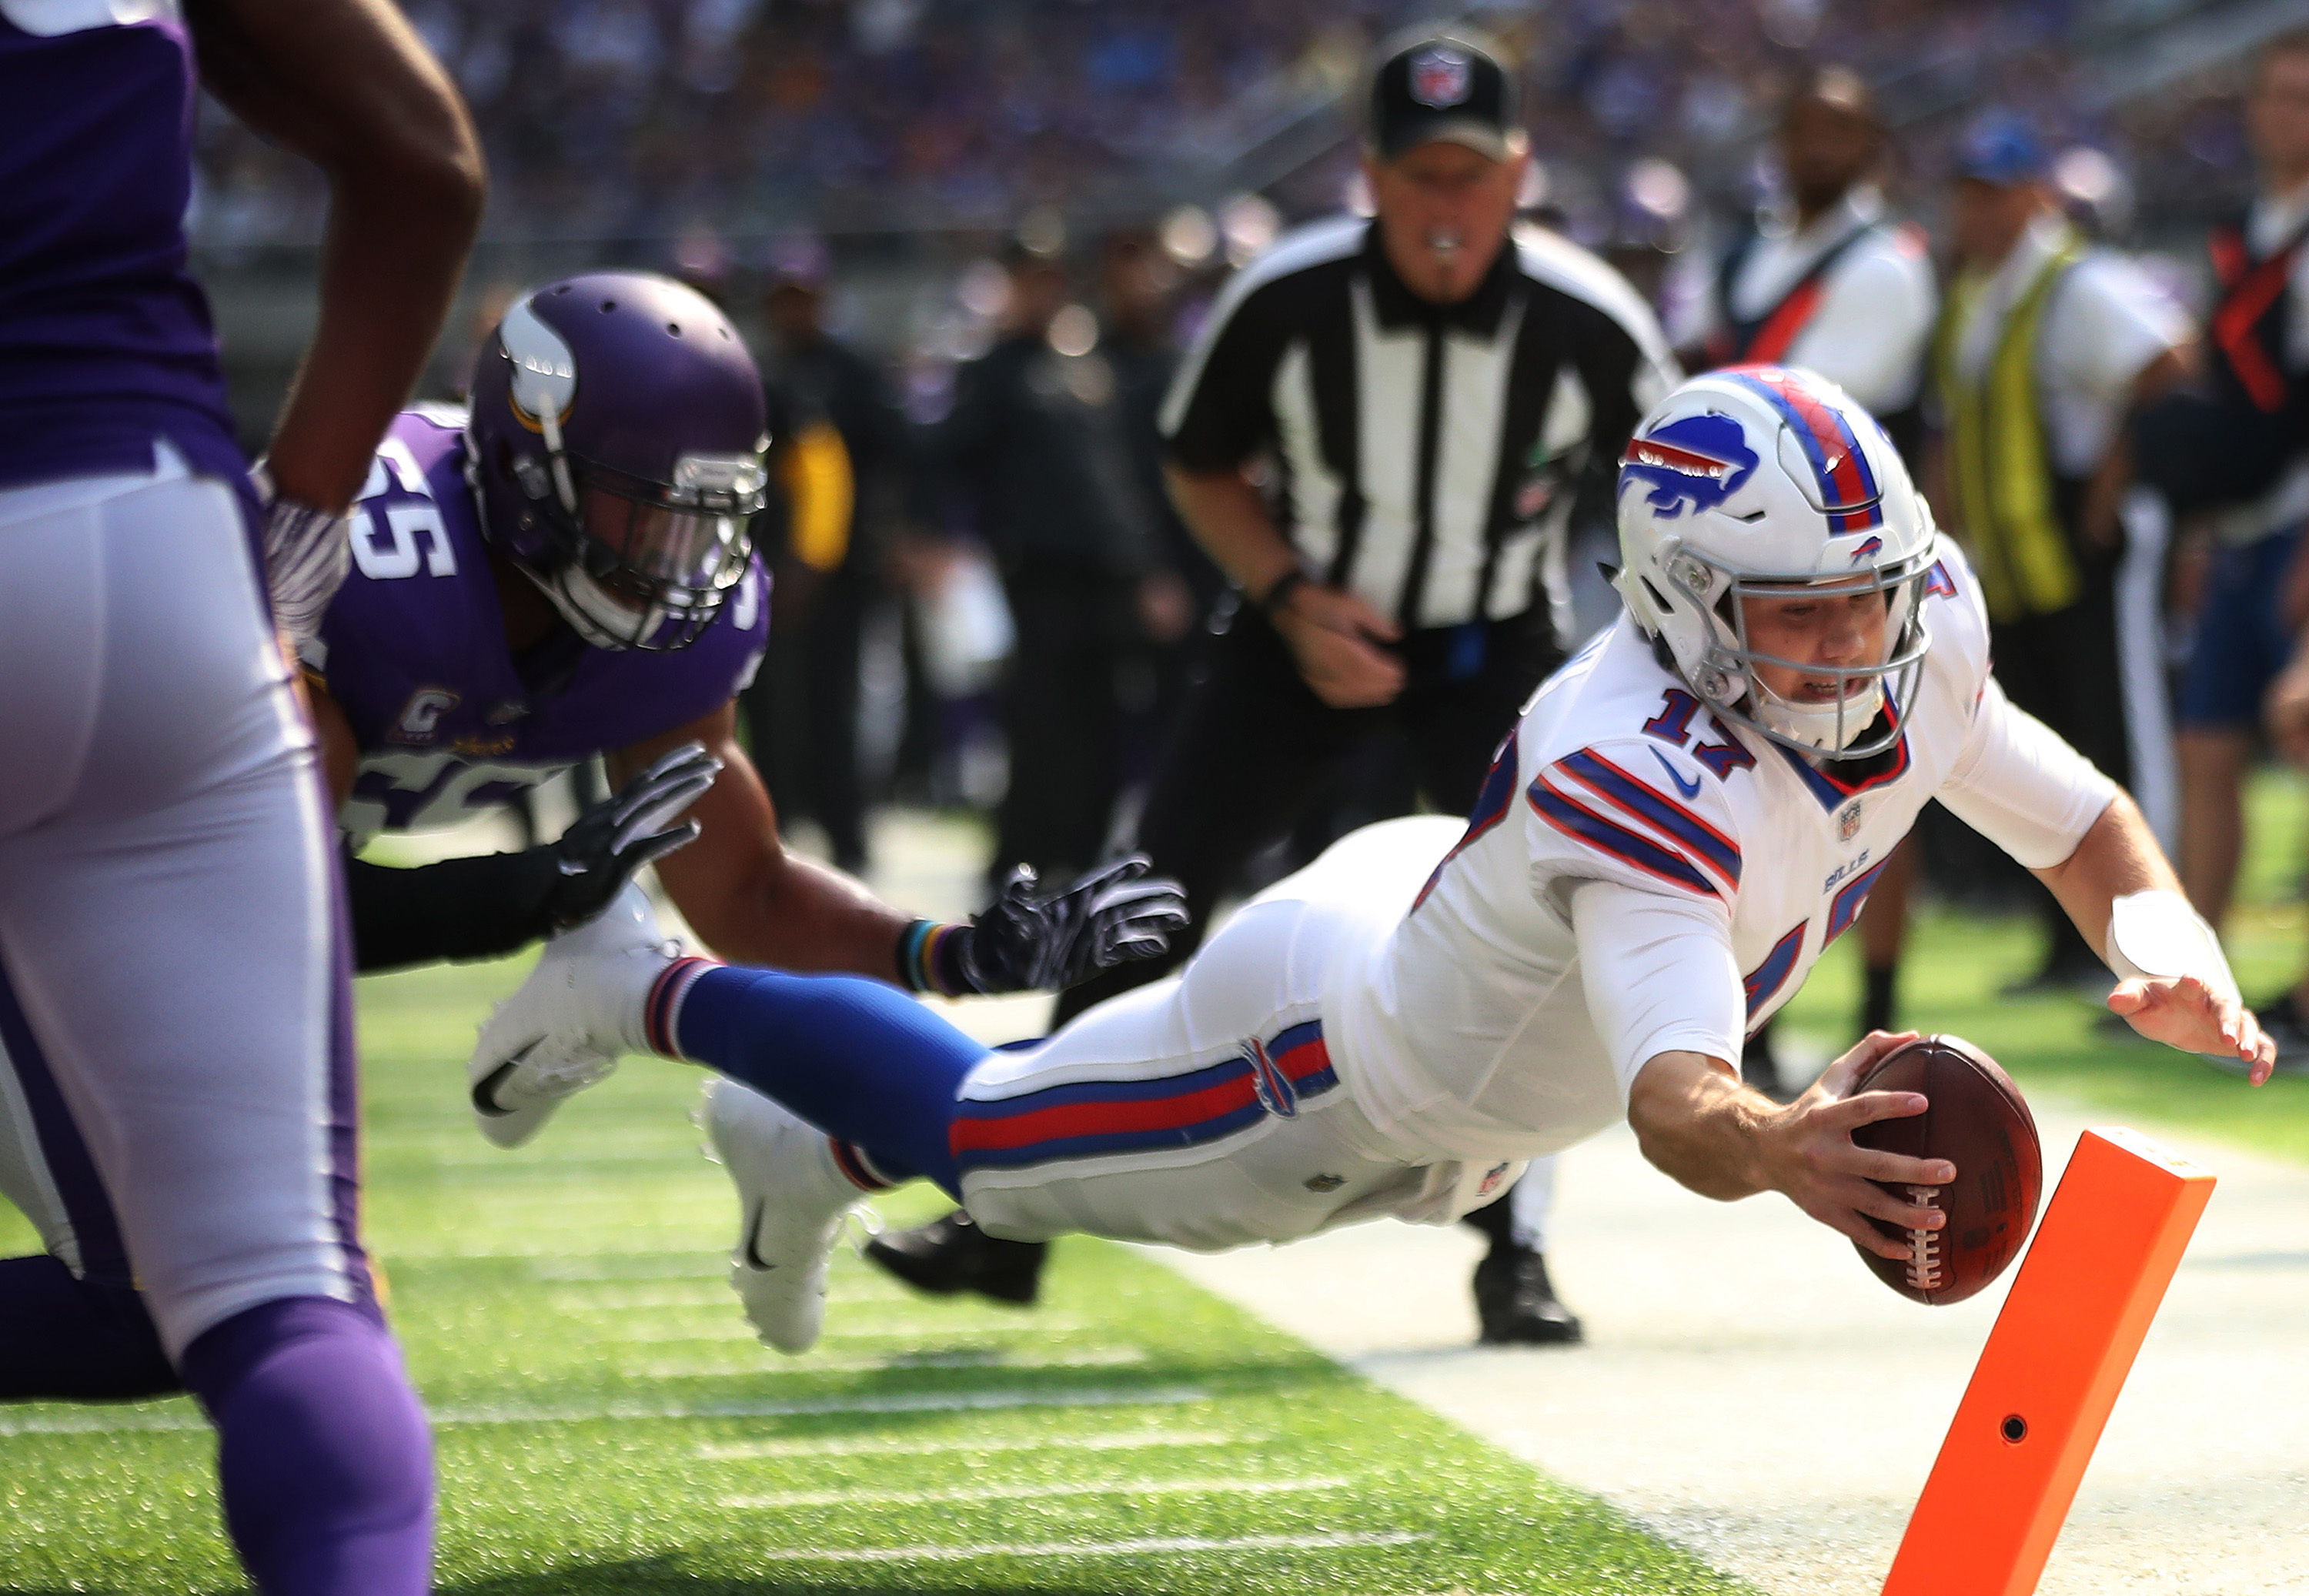 Buffalo rookie quarterback Josh Allen ran for two touchdowns and passed for another as the Bills won at Minnesota in the biggest upset of the young season.